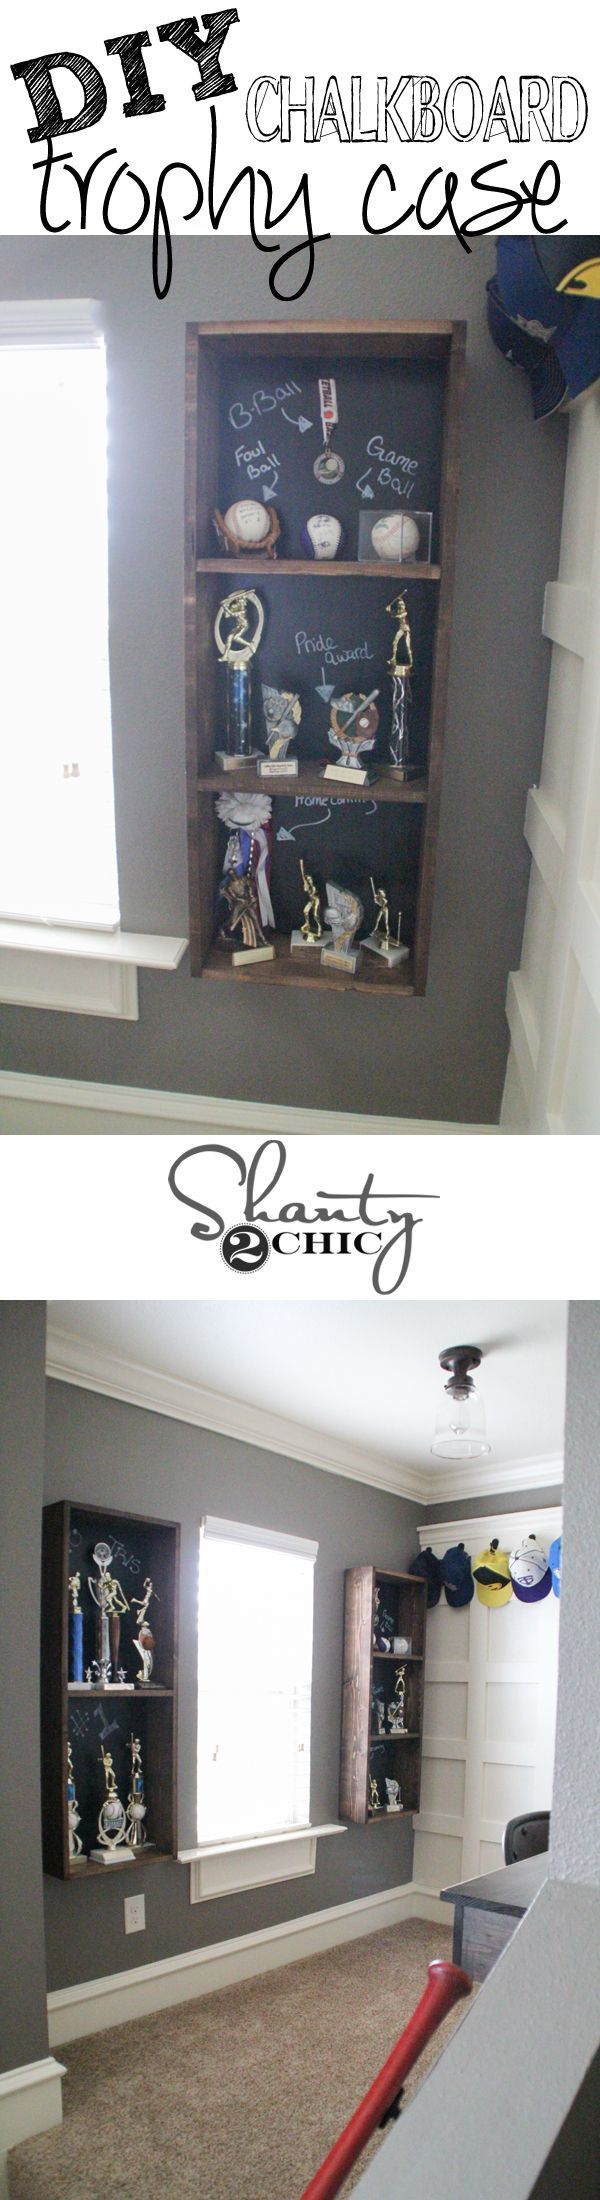 DIY trophy case with a chalkboard back! You can write messages or makes notes for each trophy. My boys LOVE this!